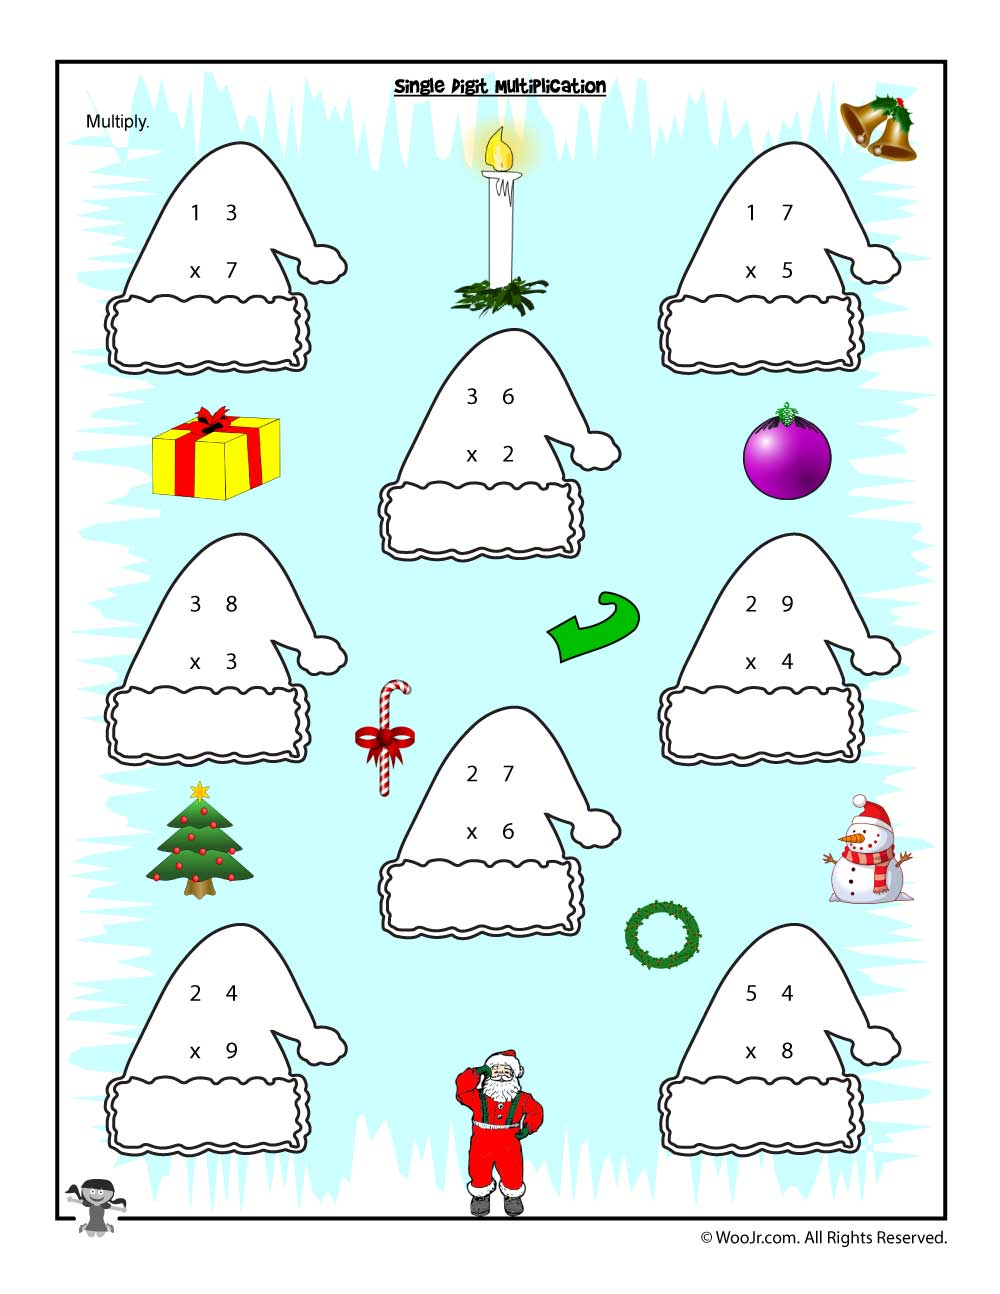 Single Digit Multiplication Christmas Worksheet | Woo! Jr. Kids ...